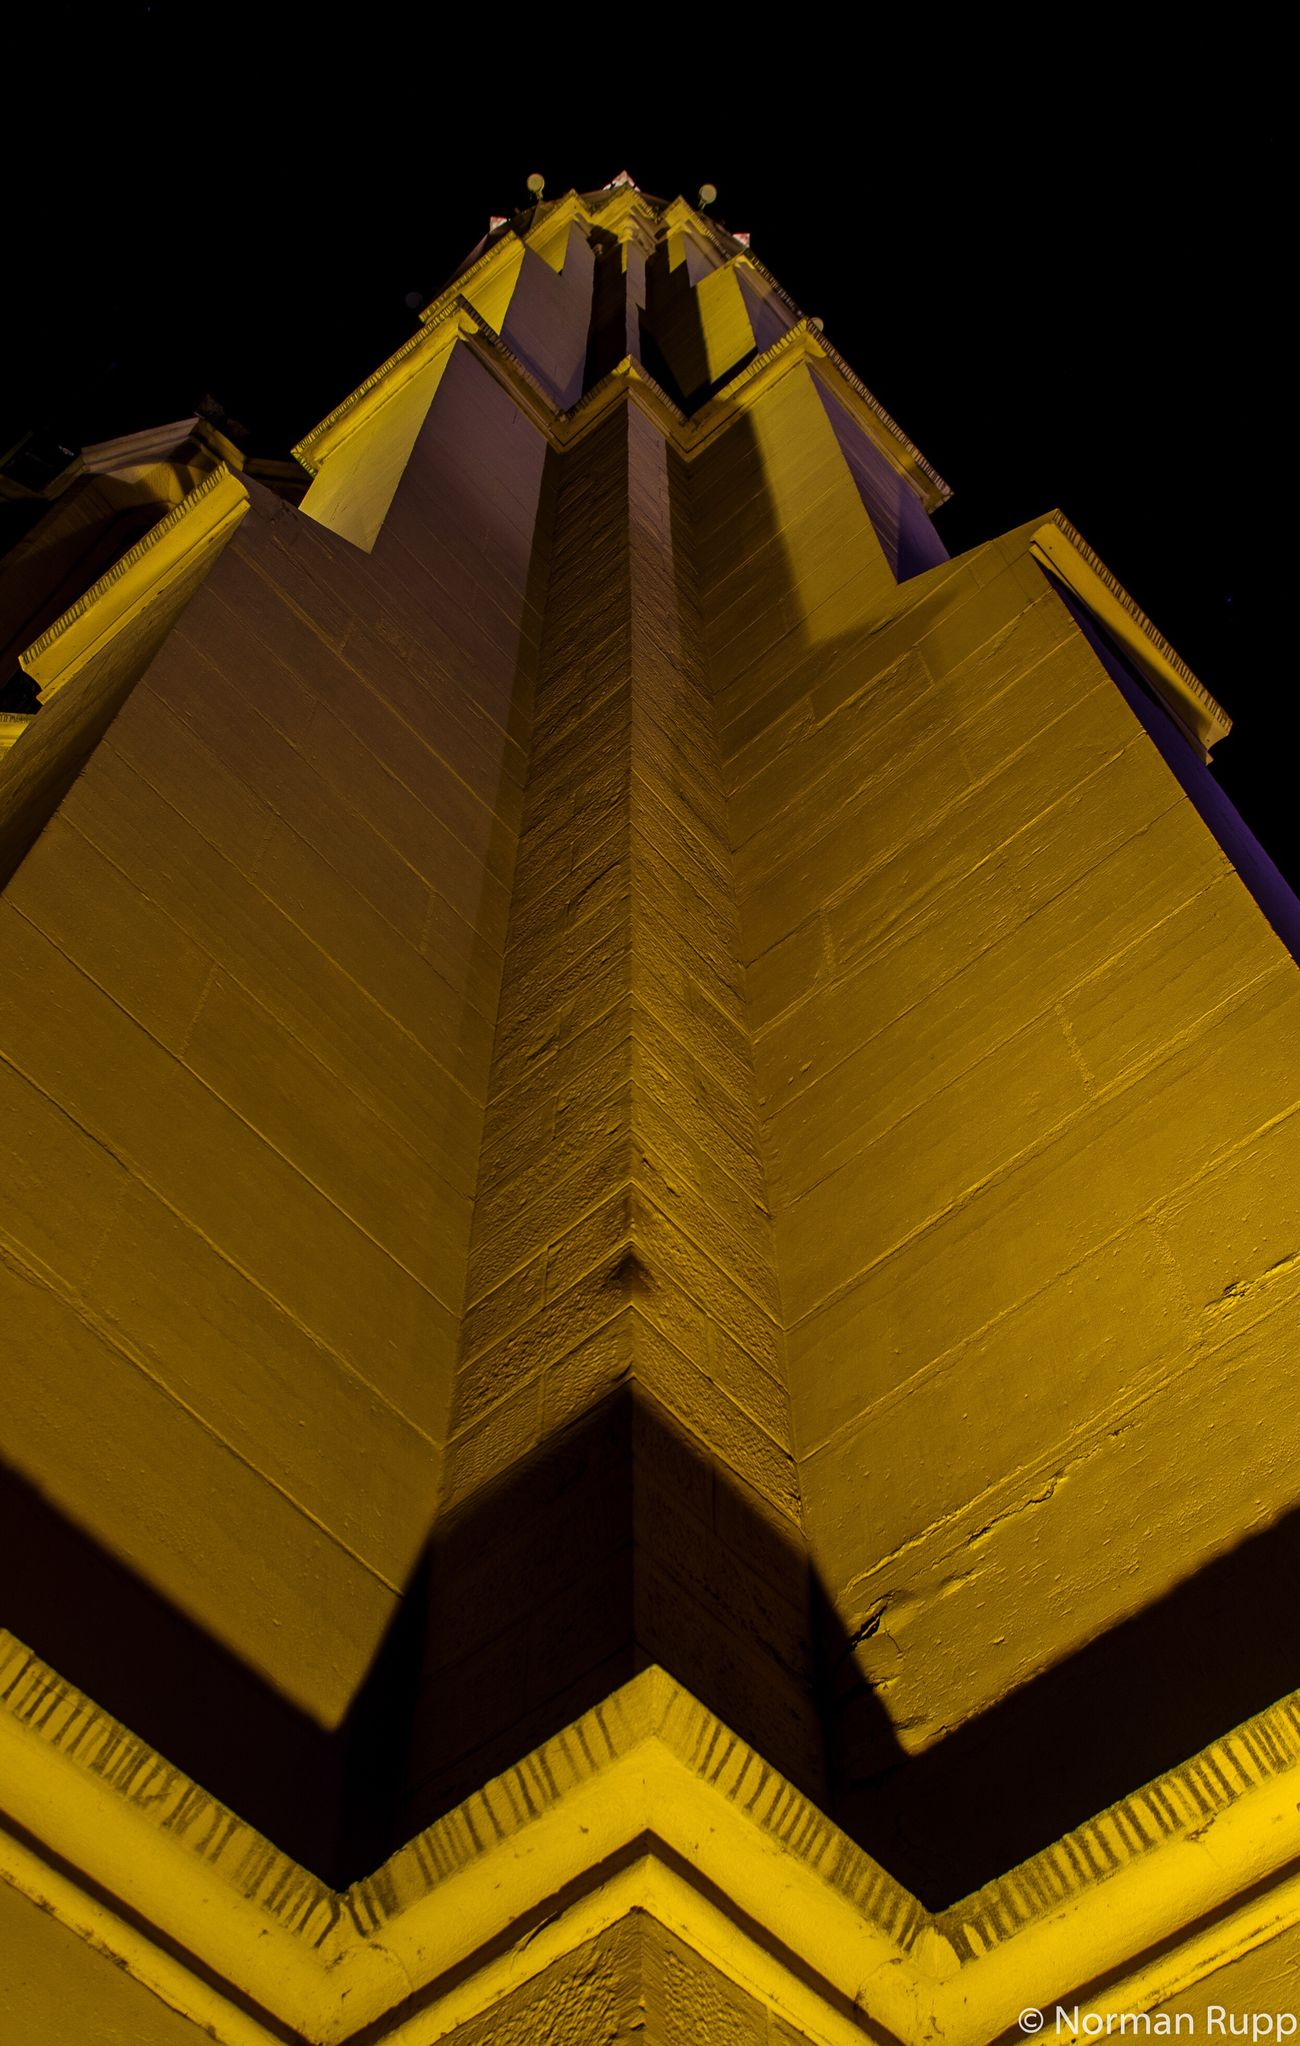 Churchtower in Walldorf Badenwürttemberg Germany Long Exposure Night Yellow Building Street Dark Light